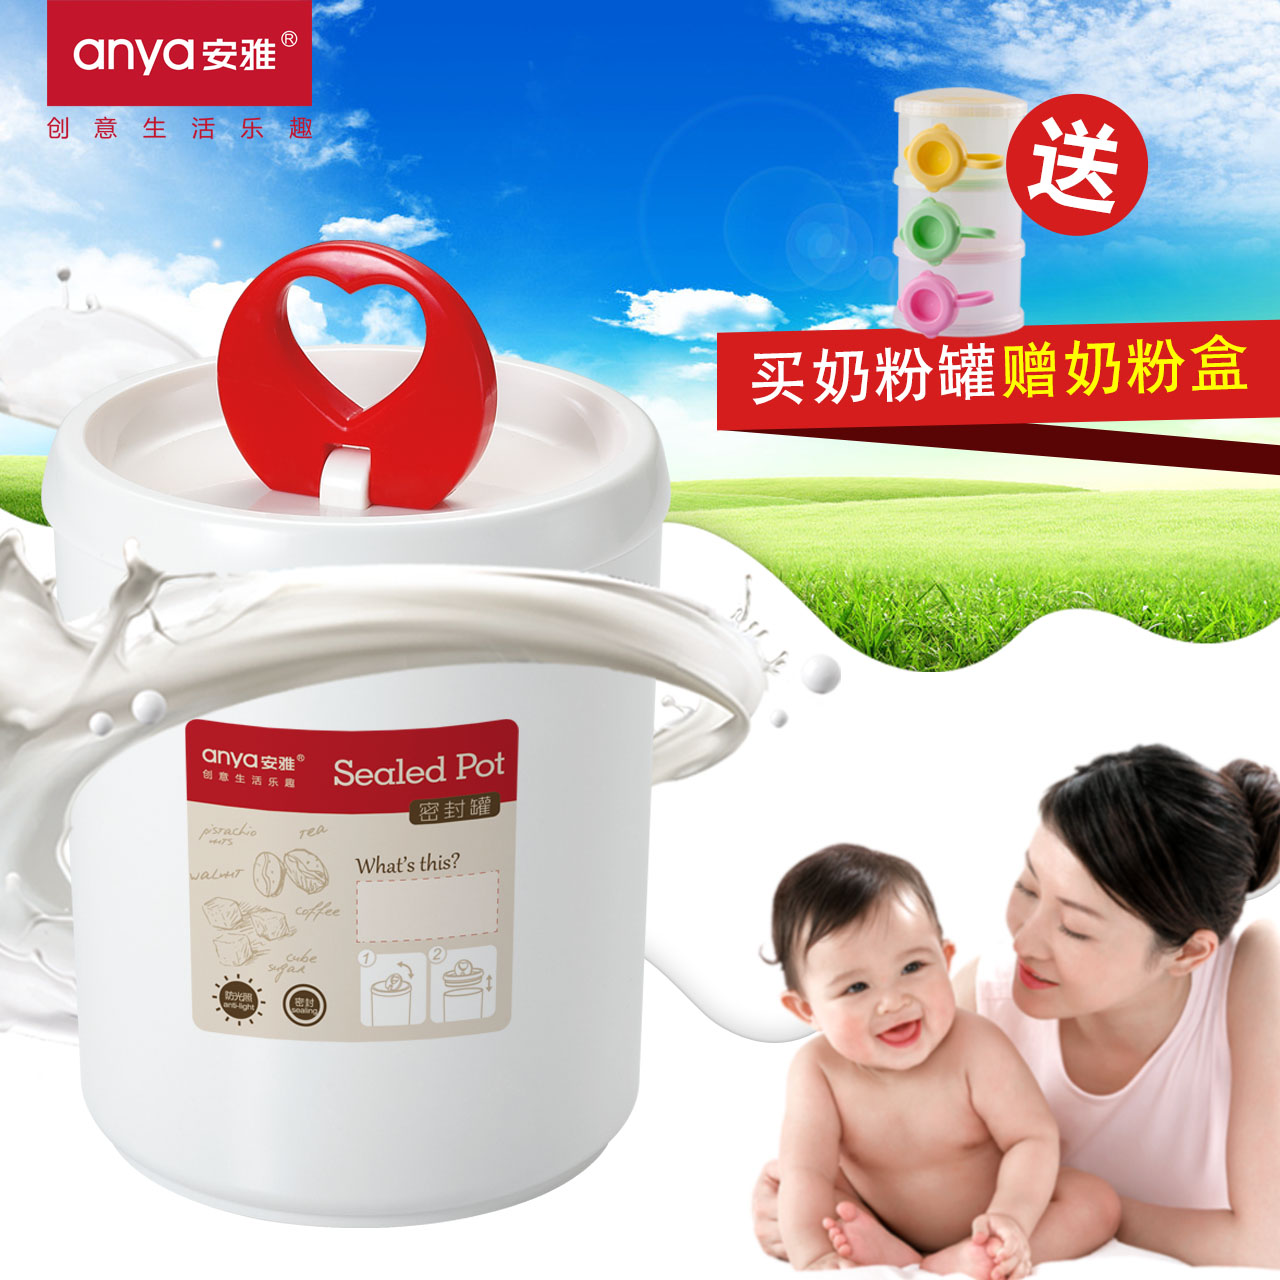 Anya anya g plastic snack milk cans milk storage tanks sealed cans moisture storage jar kitchen